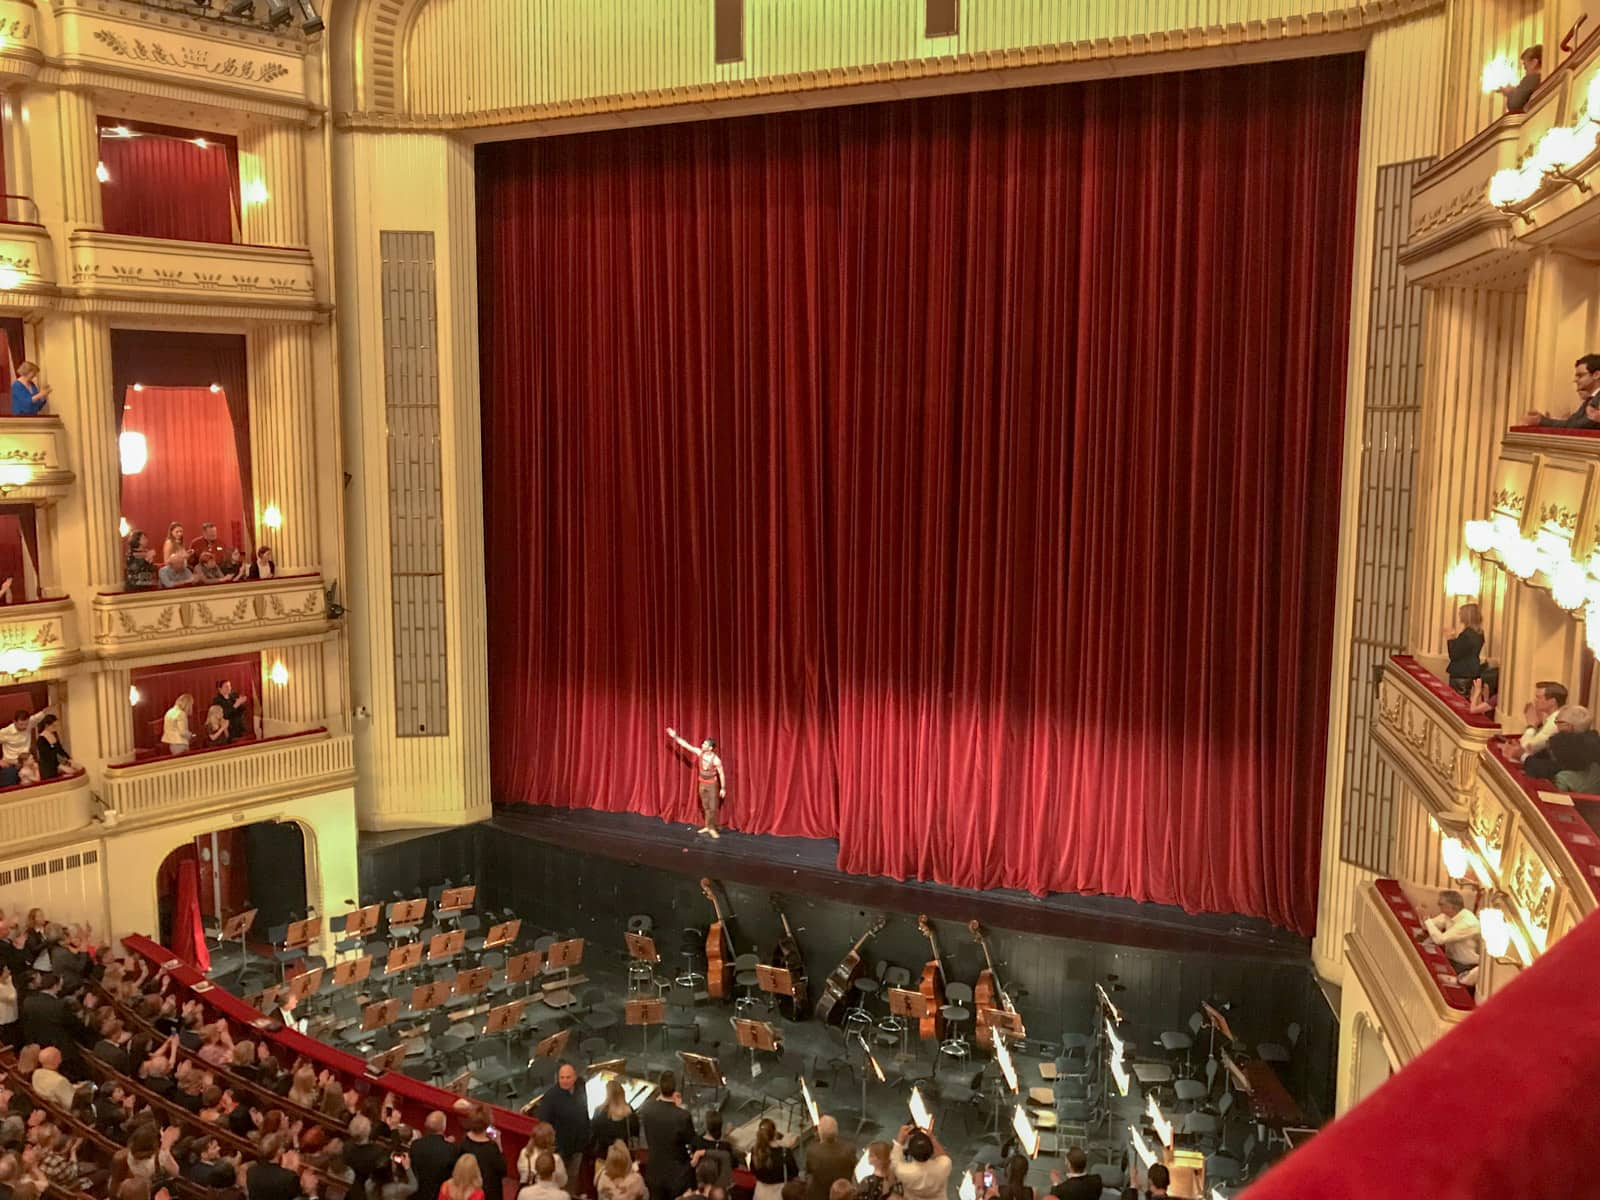 A theatre seen from a box seat. It is the end of a show, and a red curtain is up on the stage. There is one performer taking a bow. The orchestra area is empty.